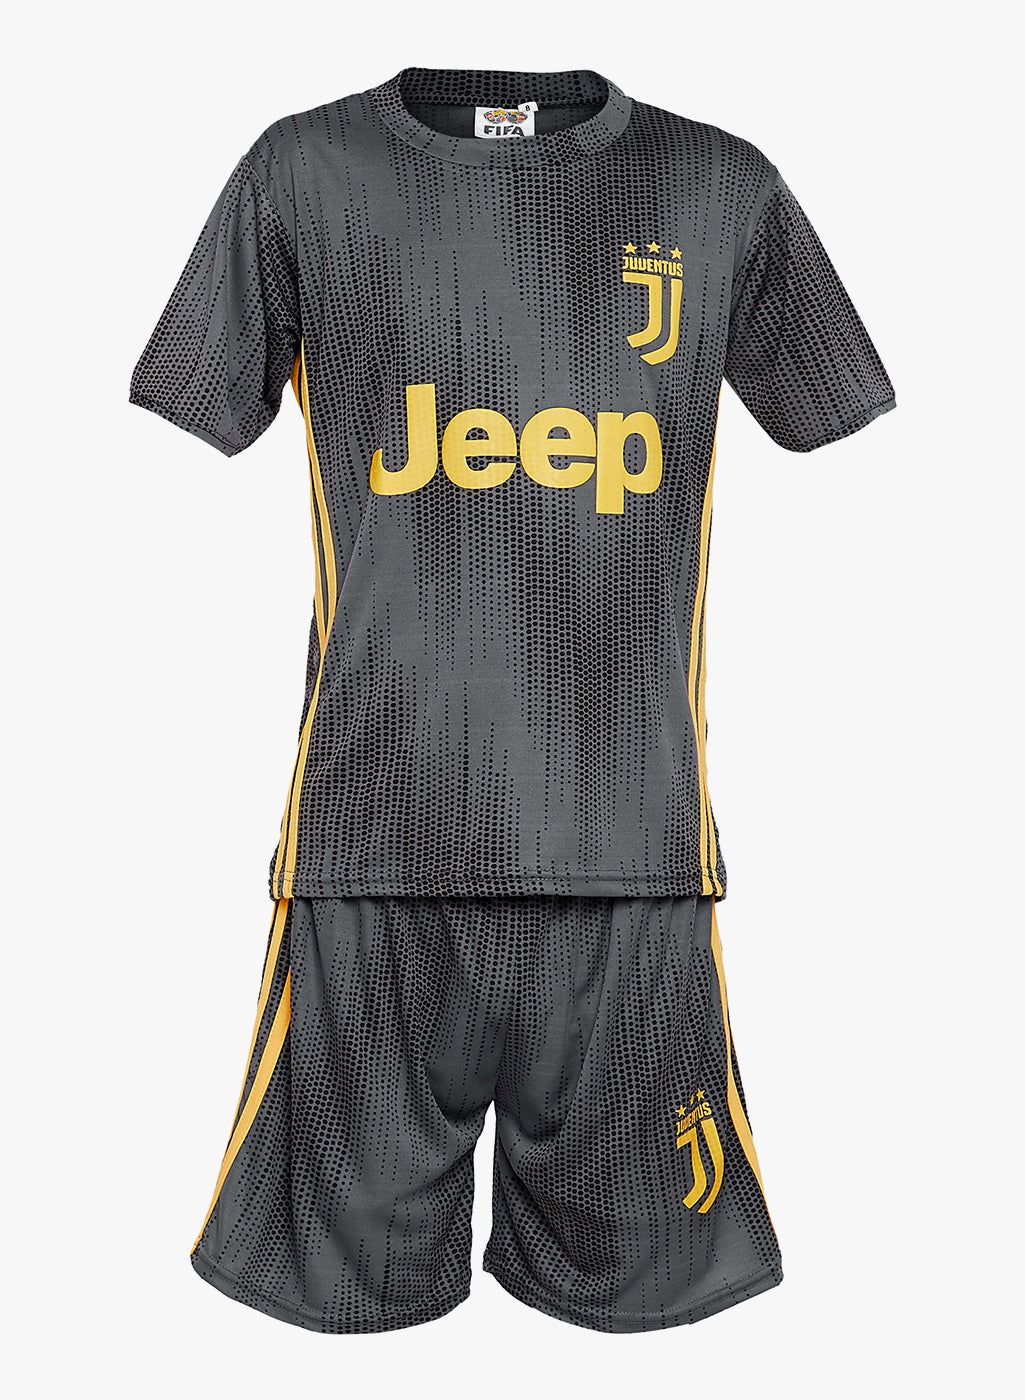 ab1be866735 Sportigoo UNISEX KIDS Juventus Football Jersey Set- 2018 19